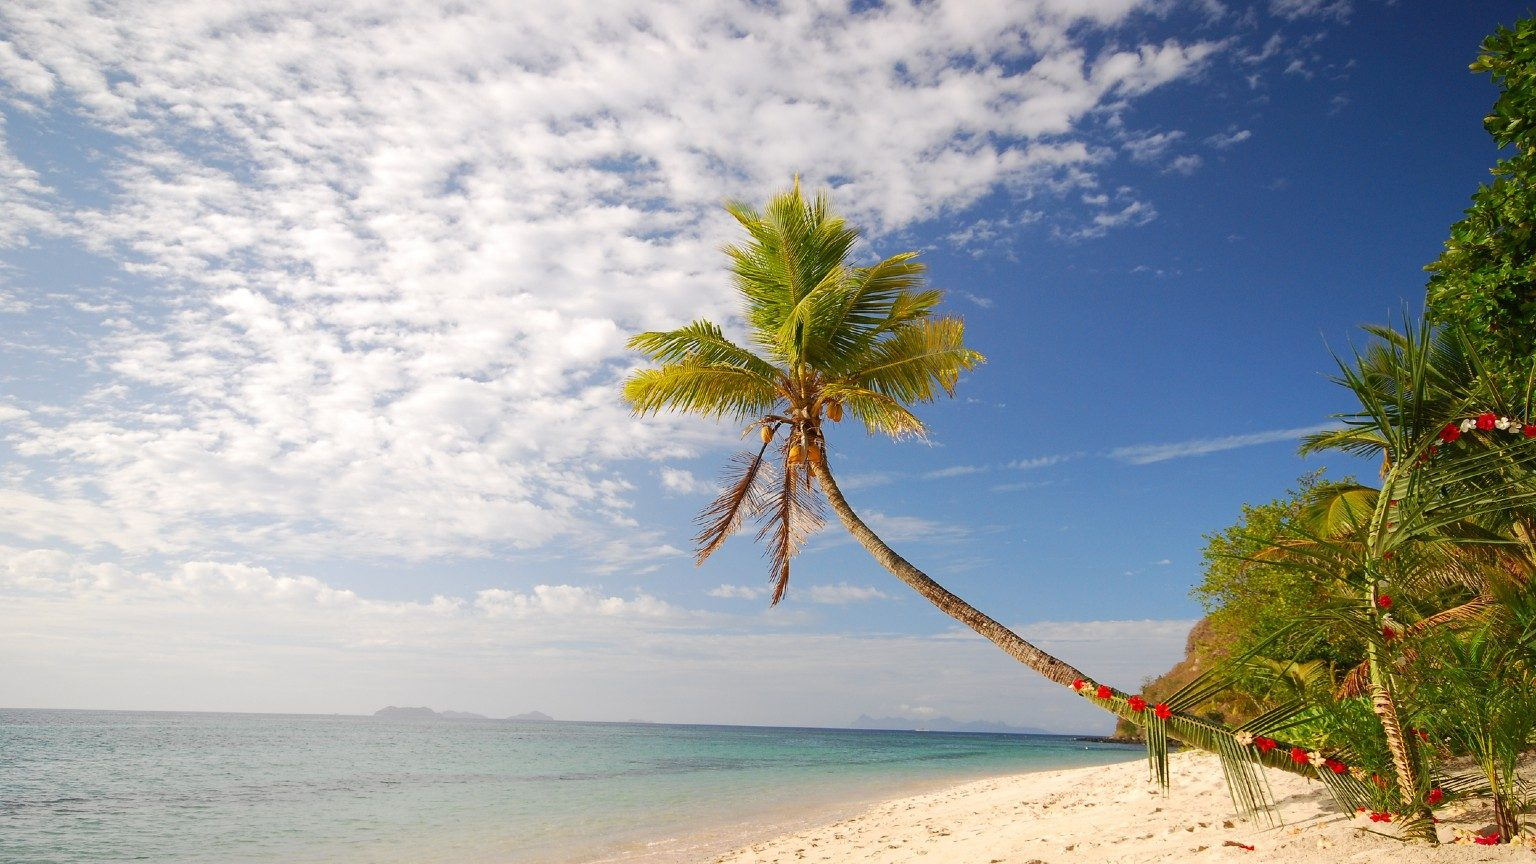 Palm tree on beach in fiji